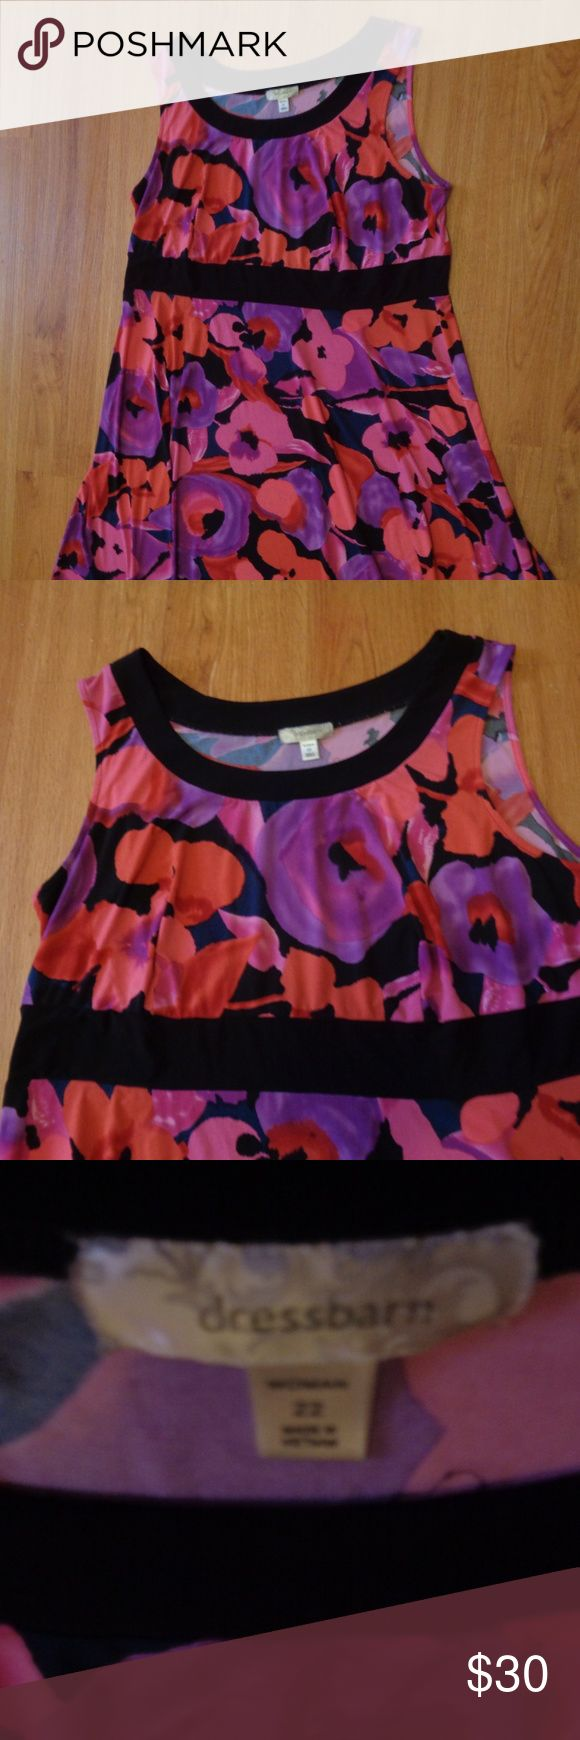 Vibrant Floral DRESSBARN WOMAN Sz 22 Dress Soft, stretchy, figure flattering dress from Dressbarn Woman with black accent band at waistline. SIze 22 but can stretch to fit a size 24 as well. Like new condition. Dressbarn Woman Dresses